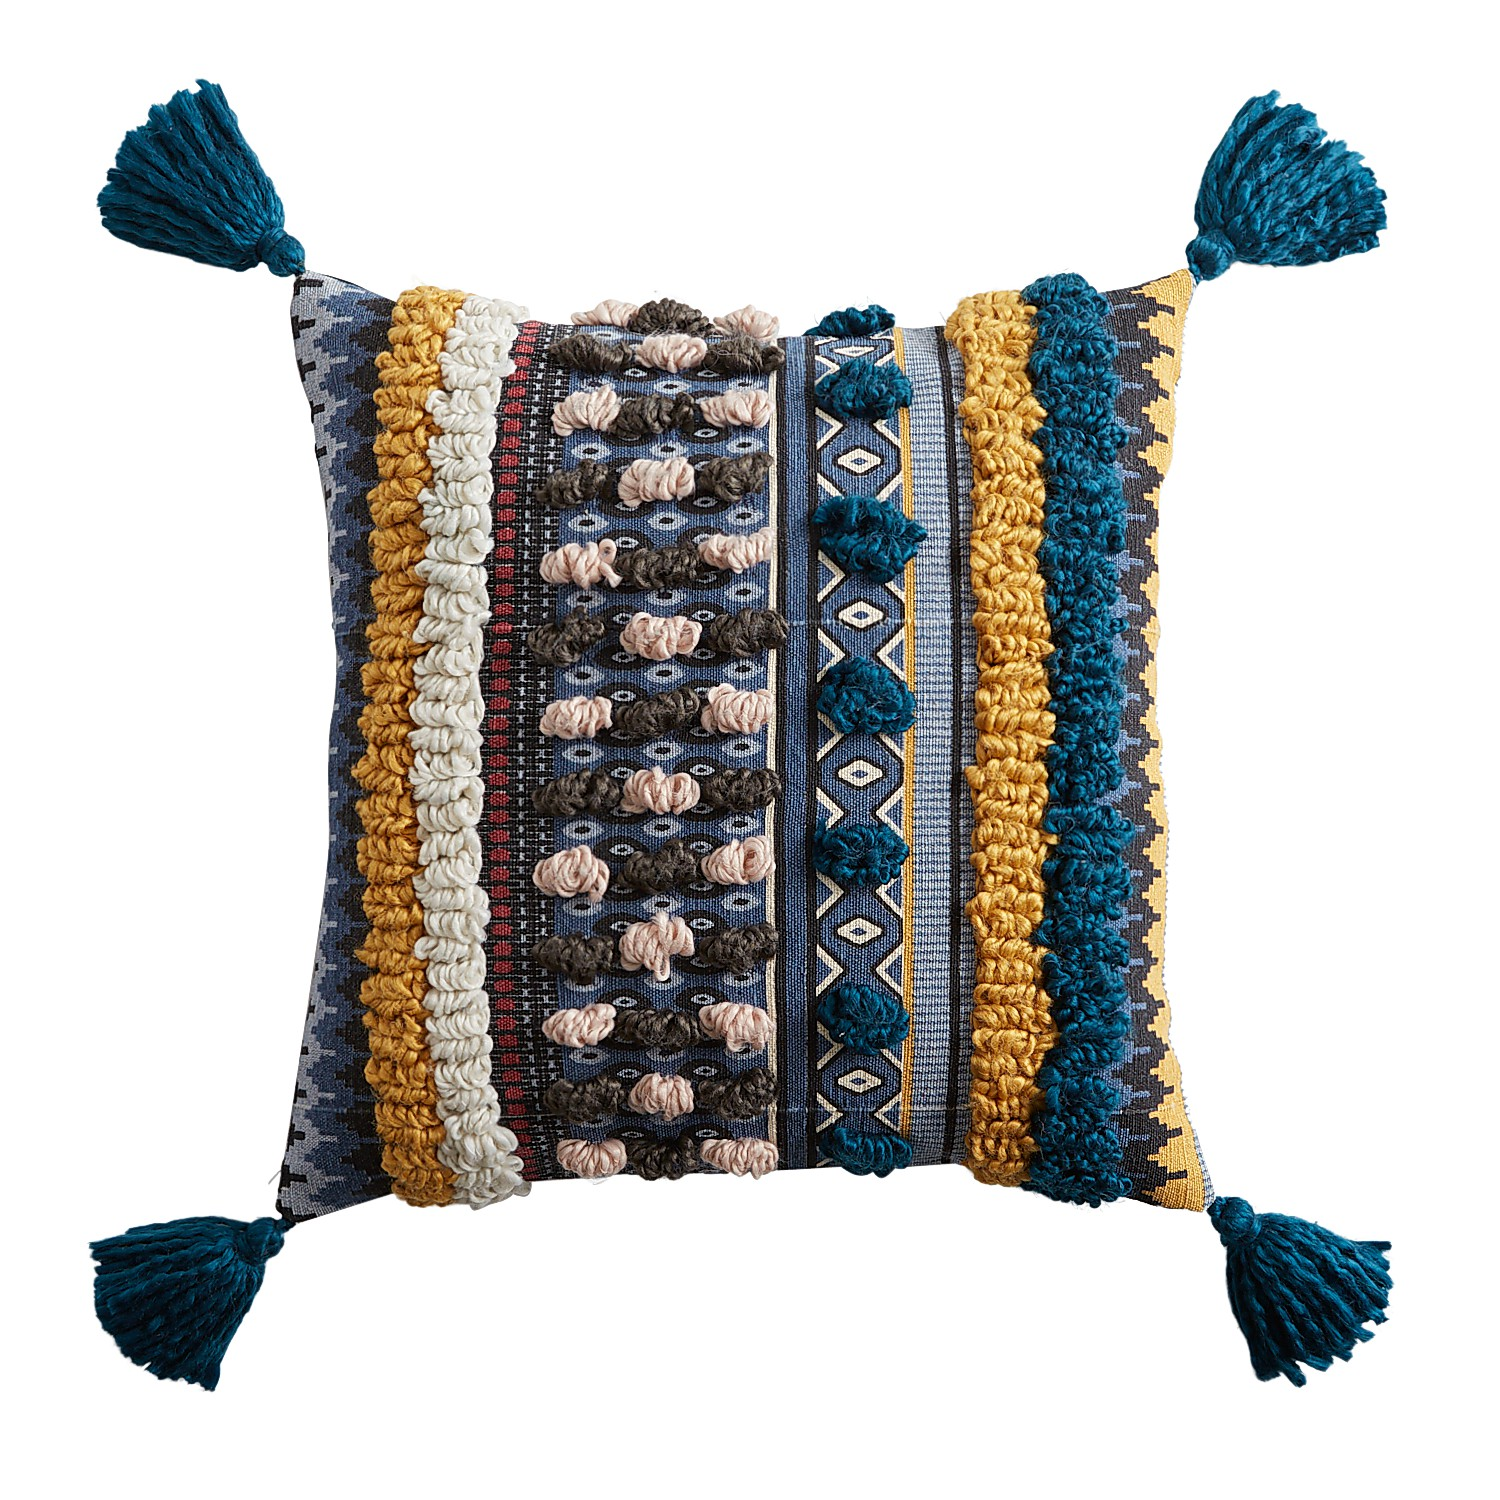 Tufted Teal & Yellow Pillow with Tassels